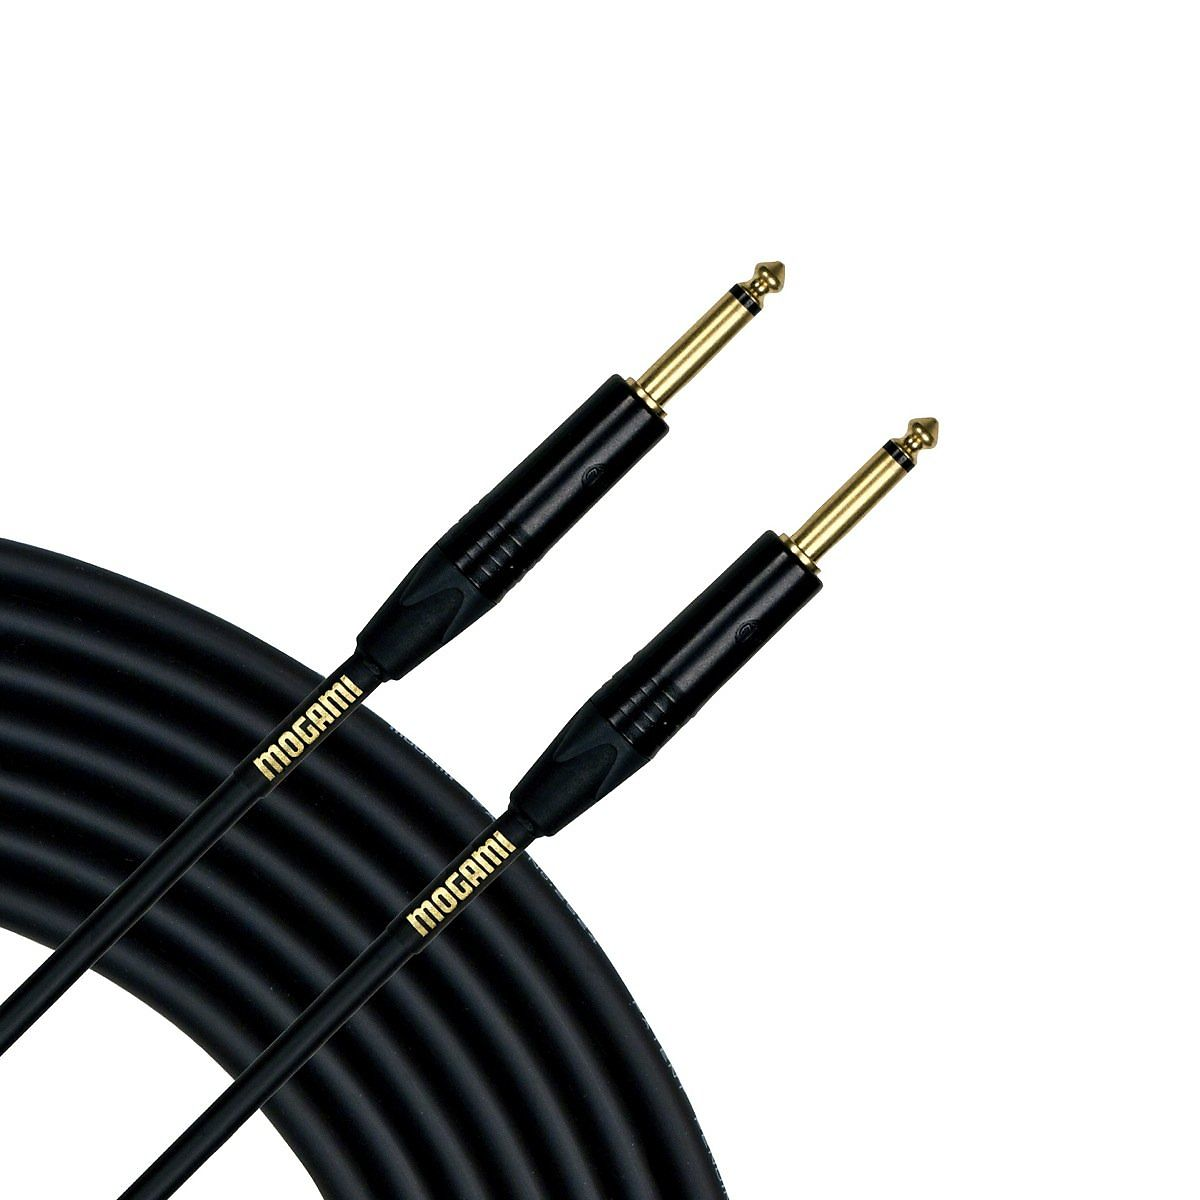 Mogami Gold Guitar/Instrument Cable, 3 Foot